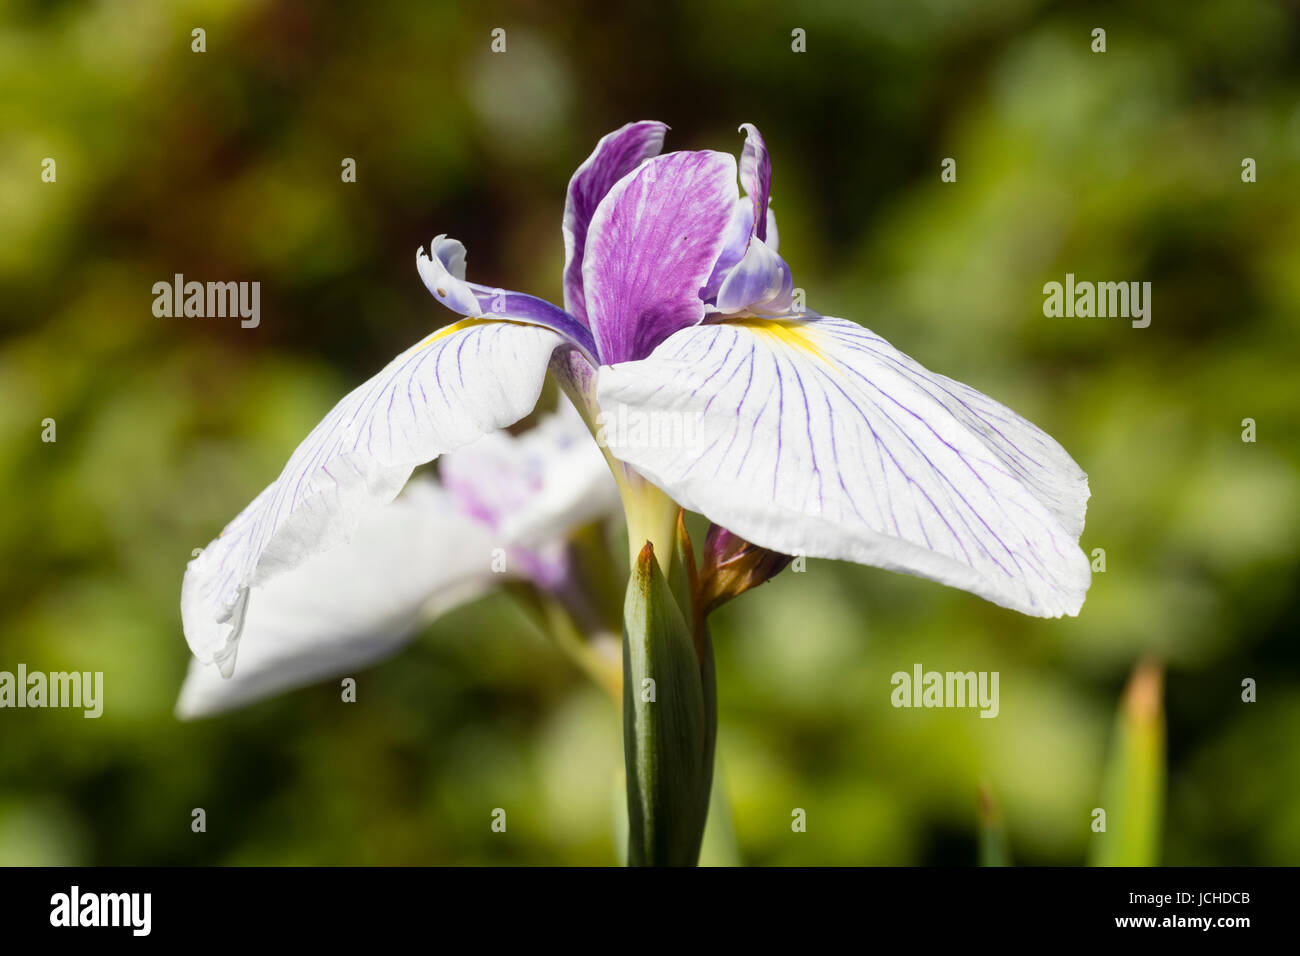 Veined white falls and purple standards of the early summer flowering water iris, Iris ensata 'Dresden China' - Stock Image